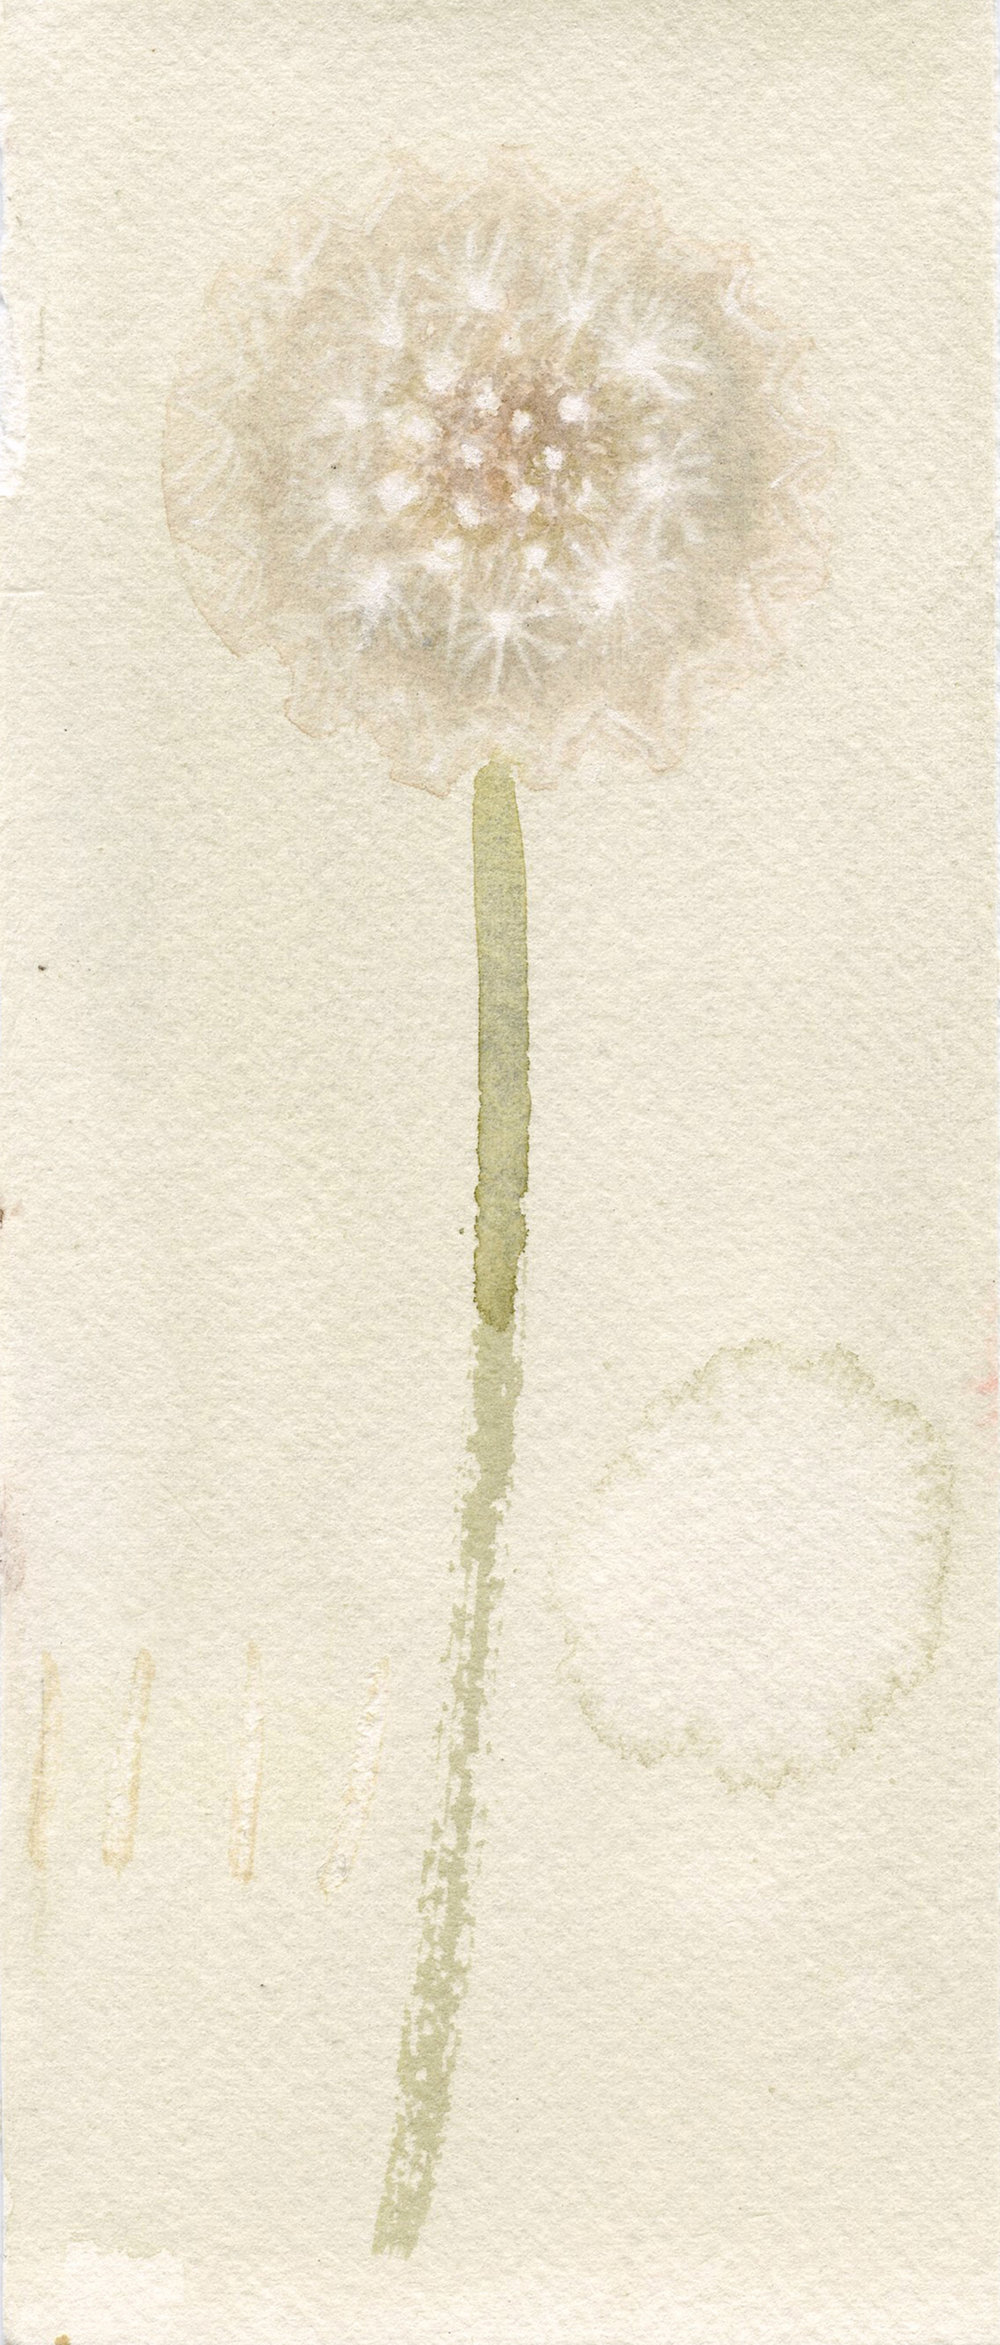 a wish   watercolour  11x21cm